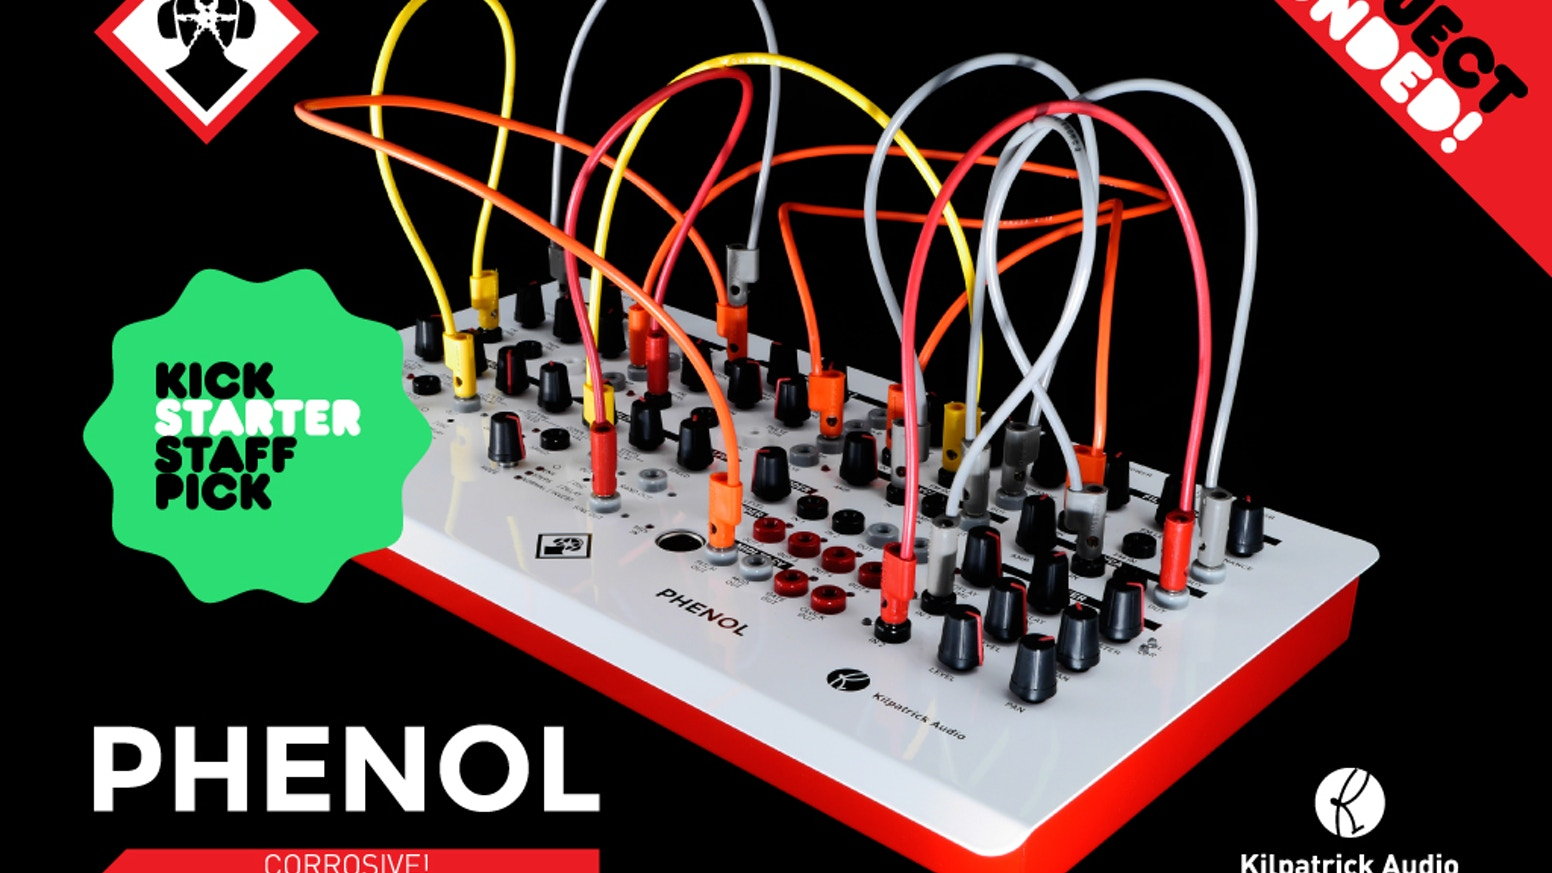 An affordable patchable analog synthesizer. Create music and sound like never before with this unique instrument.